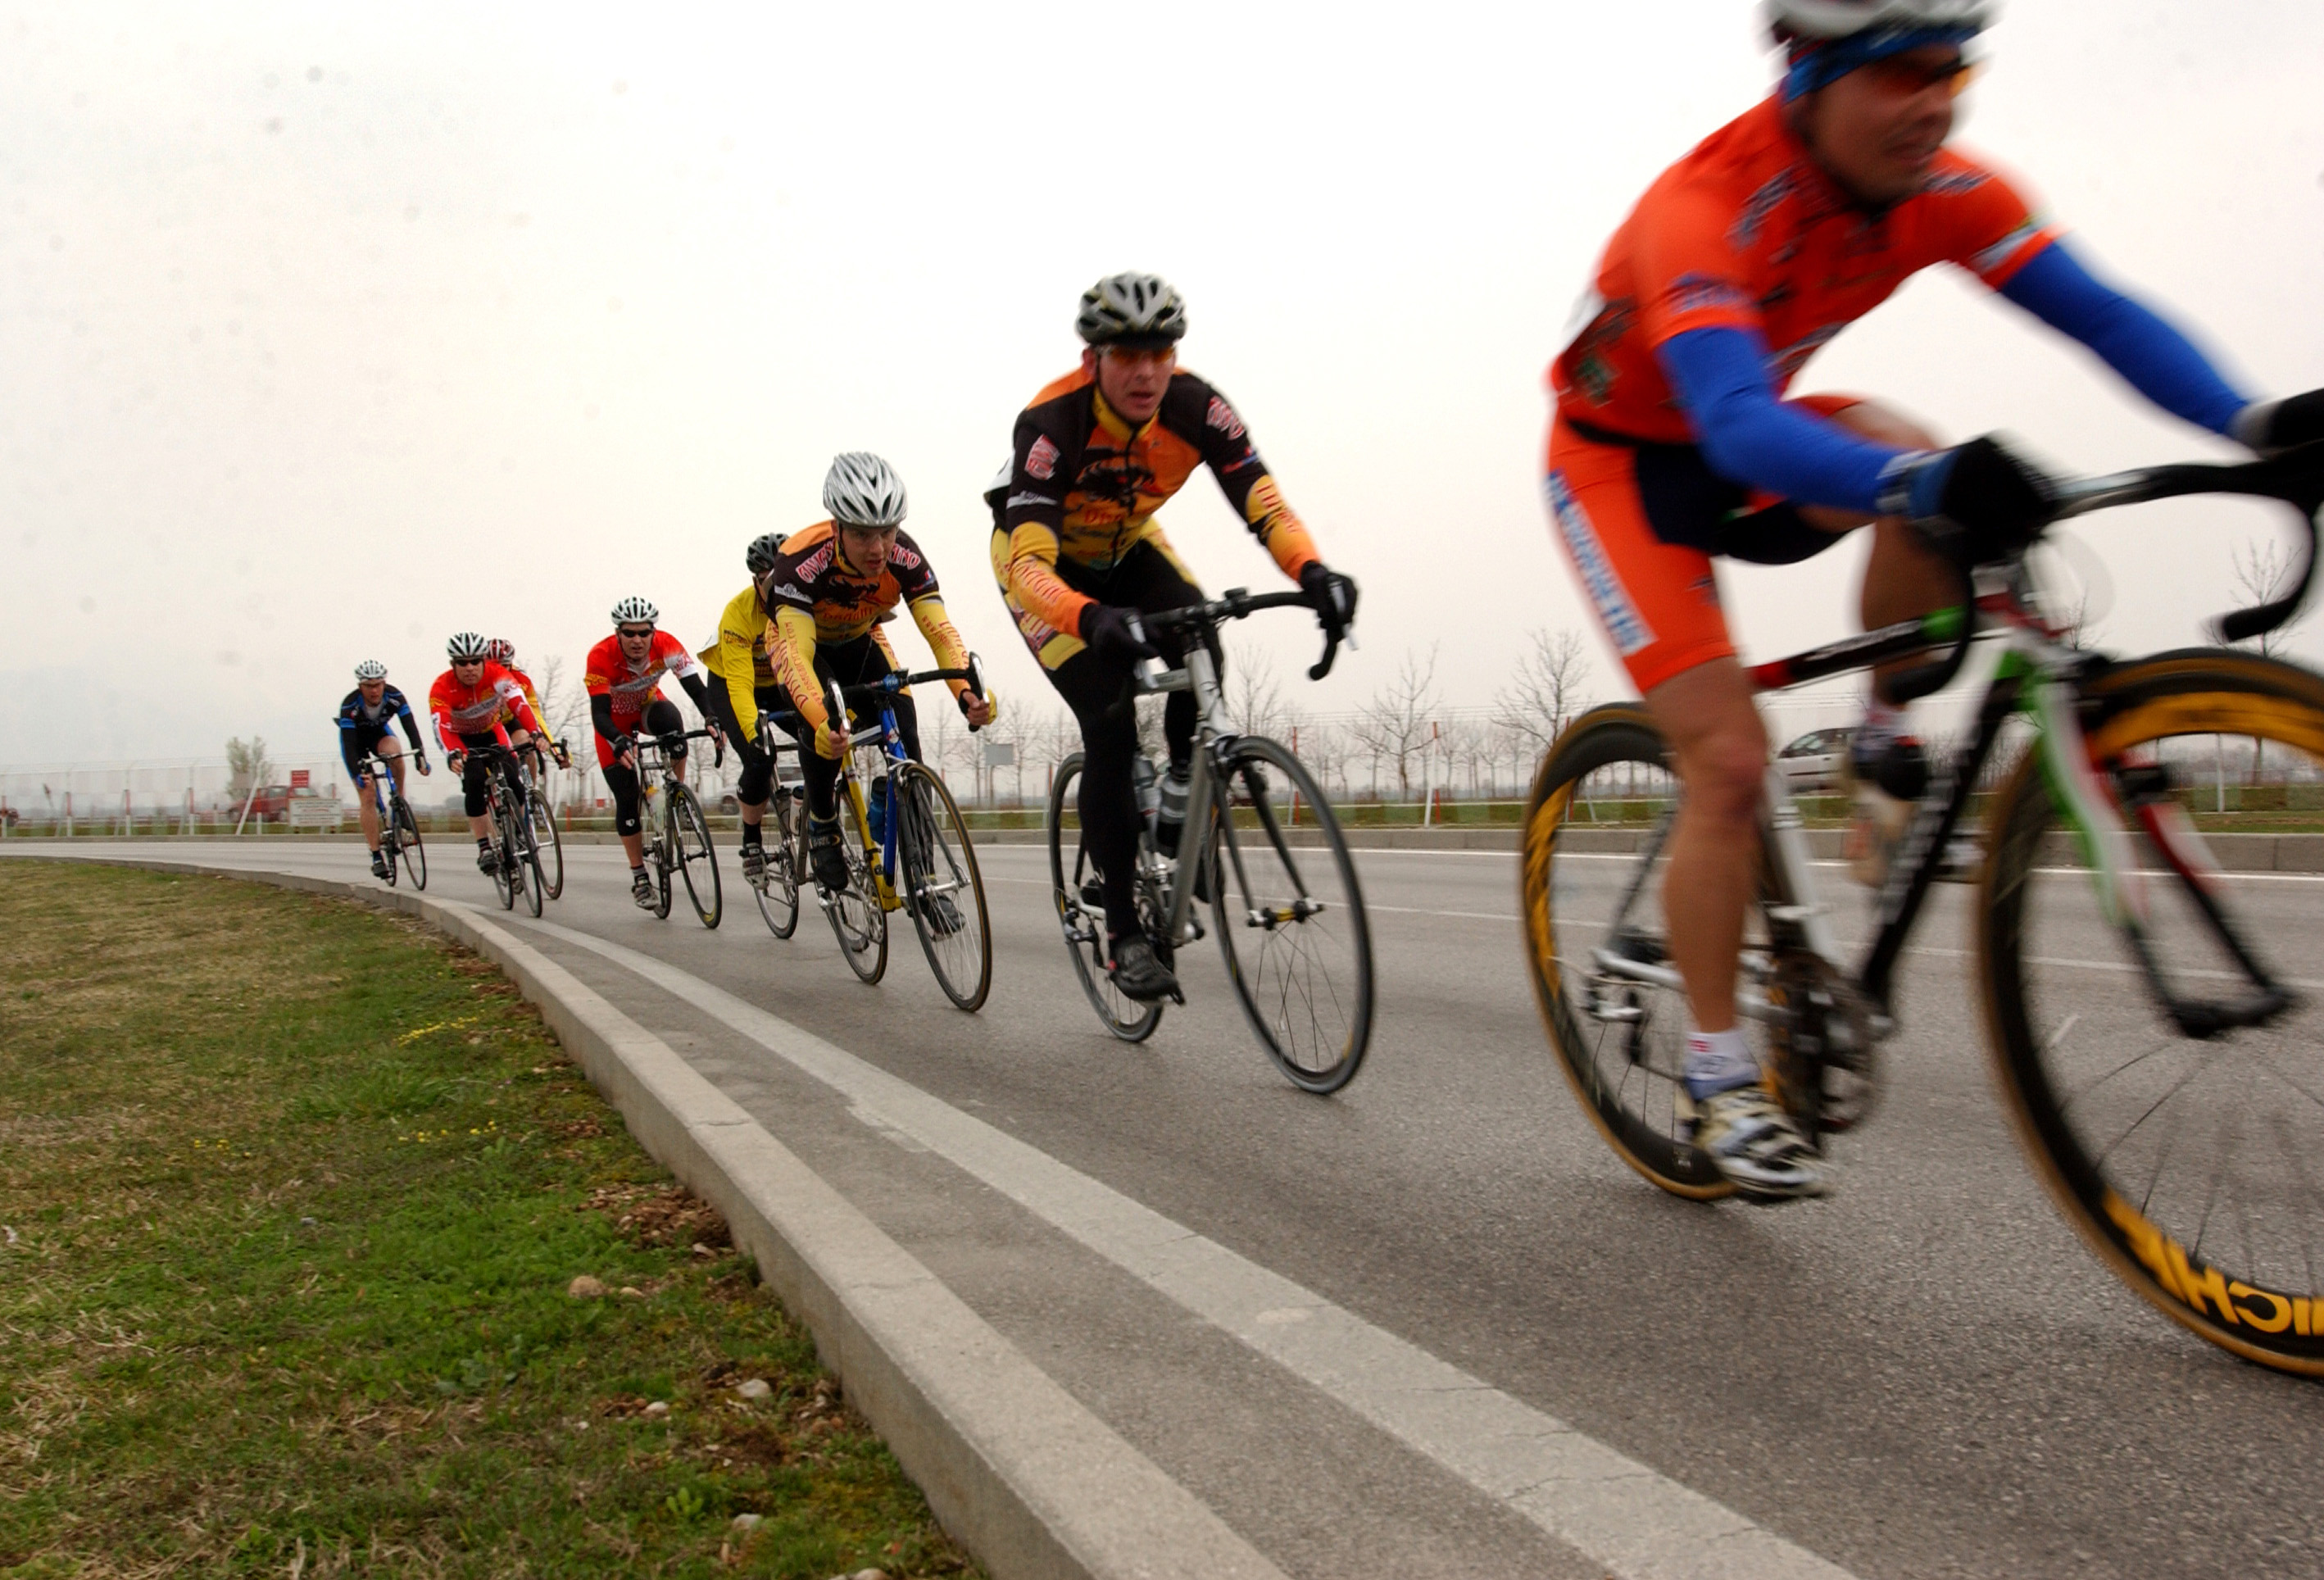 File:Military cyclists in pace line.jpg - Wikimedia Commons